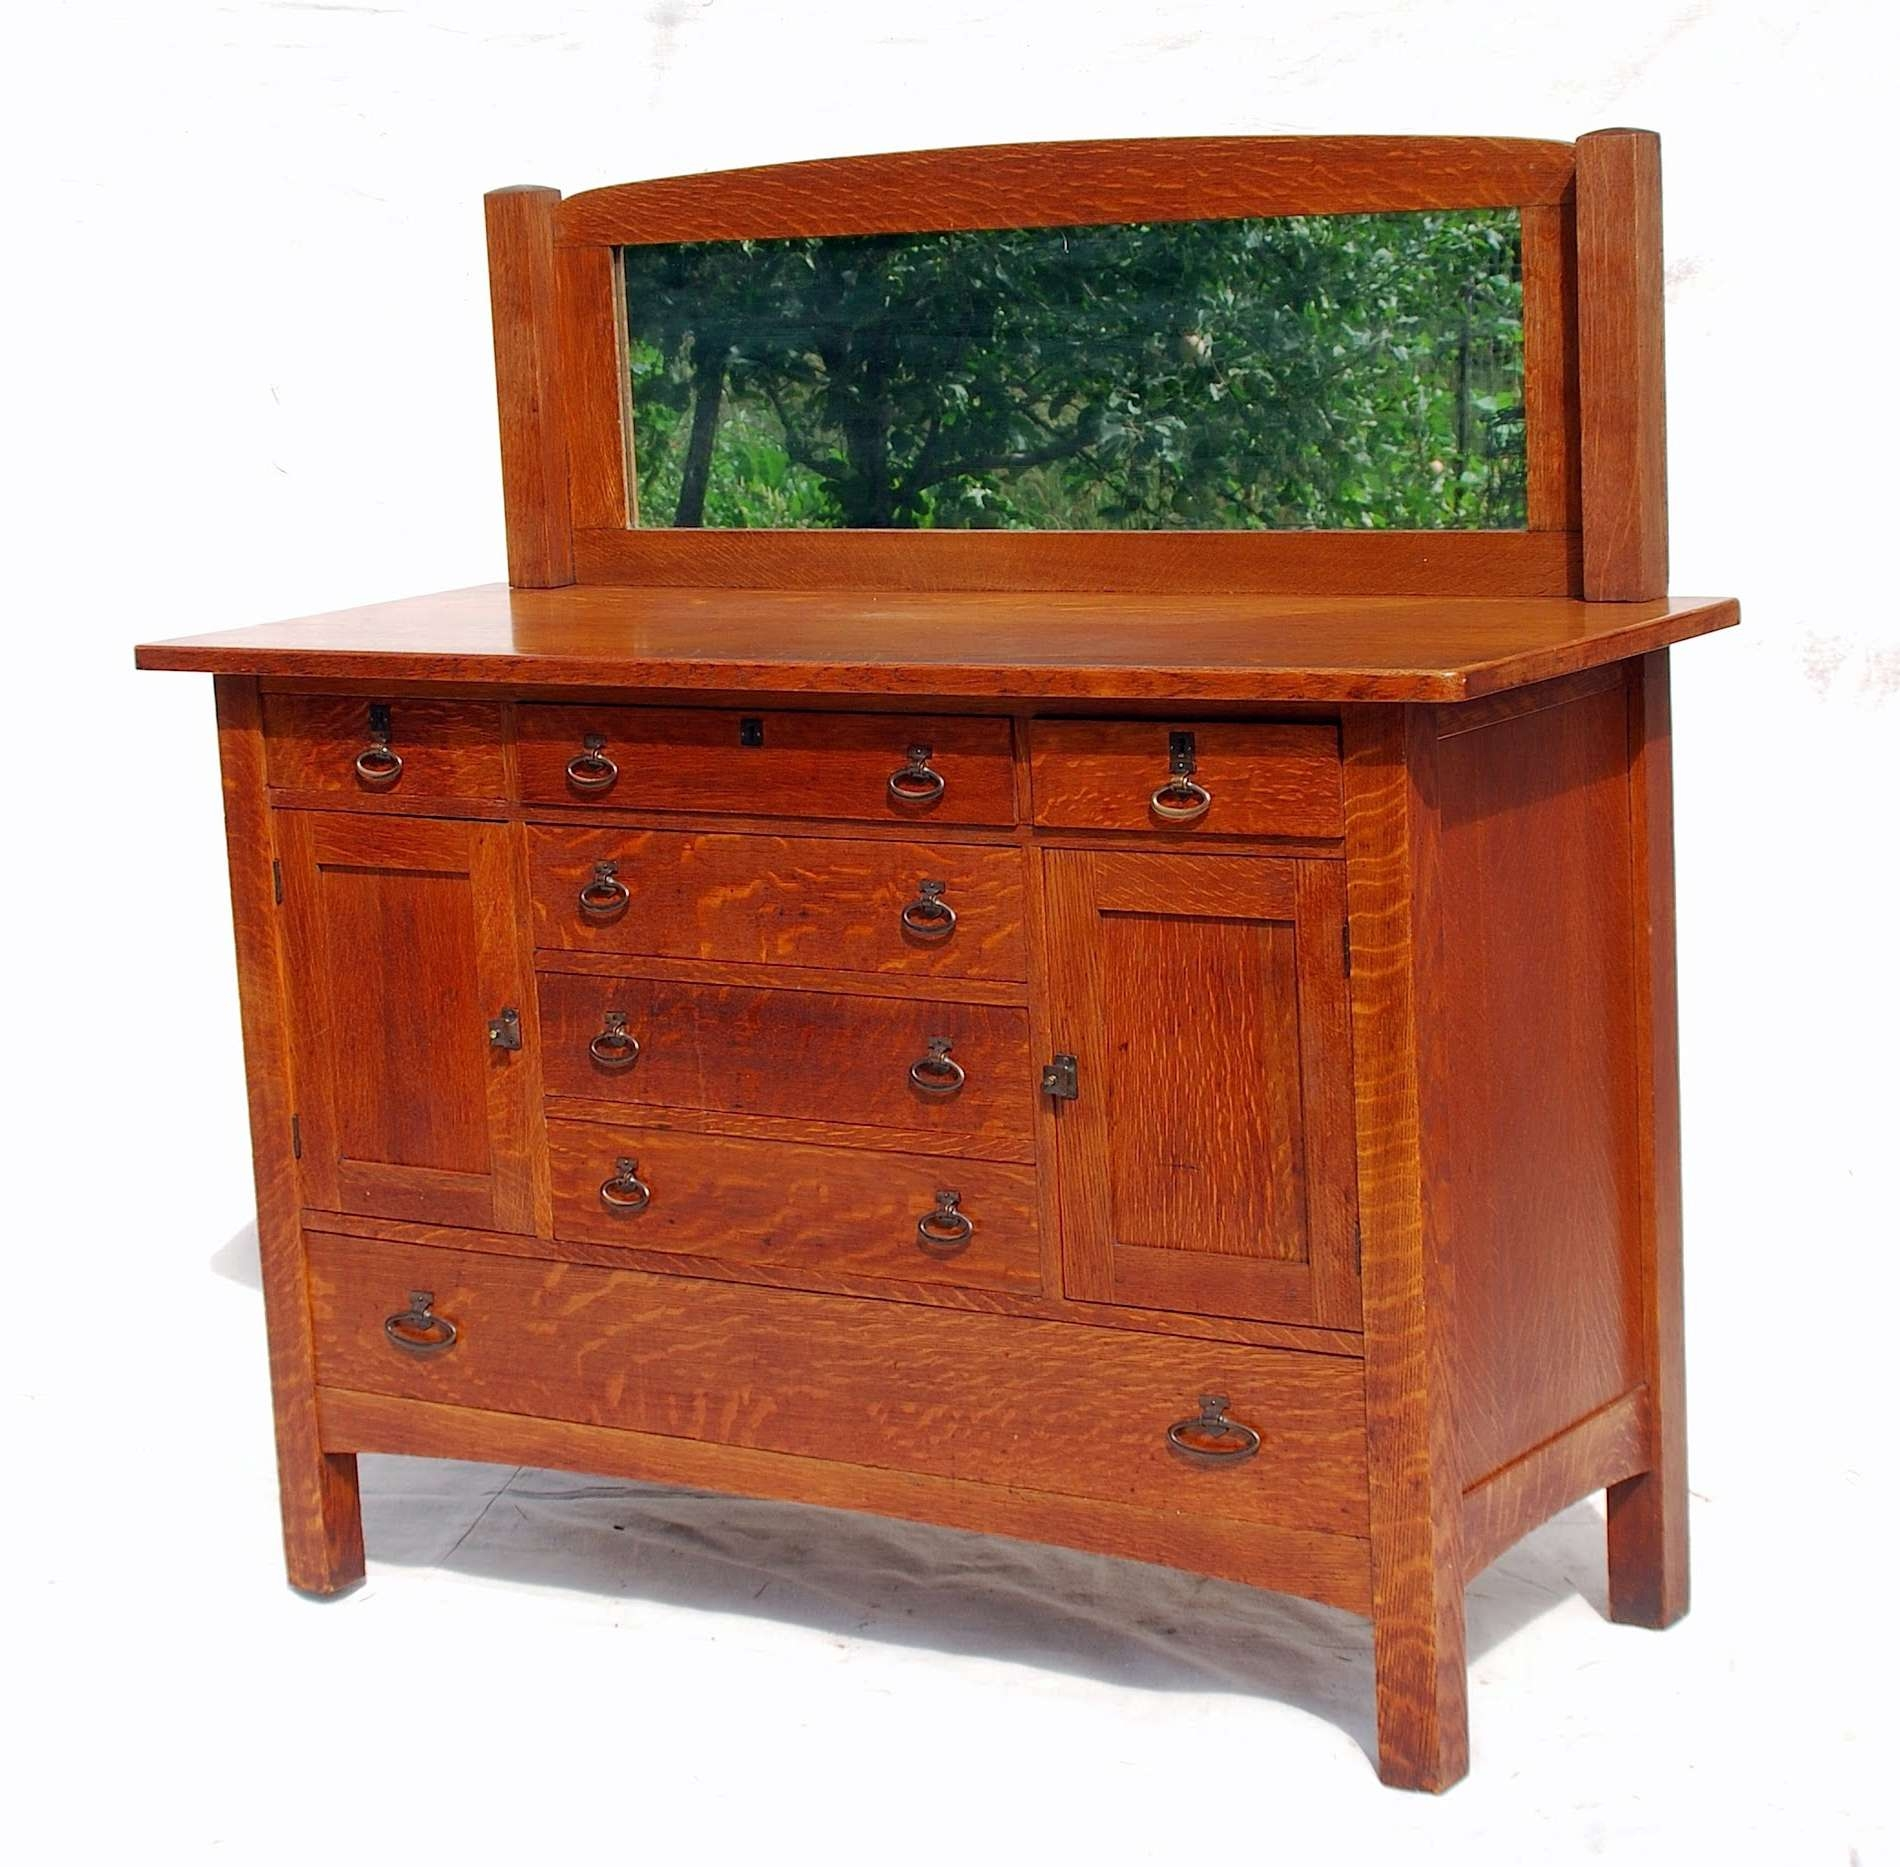 Voorhees Craftsman Mission Oak Furniture – Limbert Mirror Backed For Small Mirrored Sideboards (View 16 of 20)